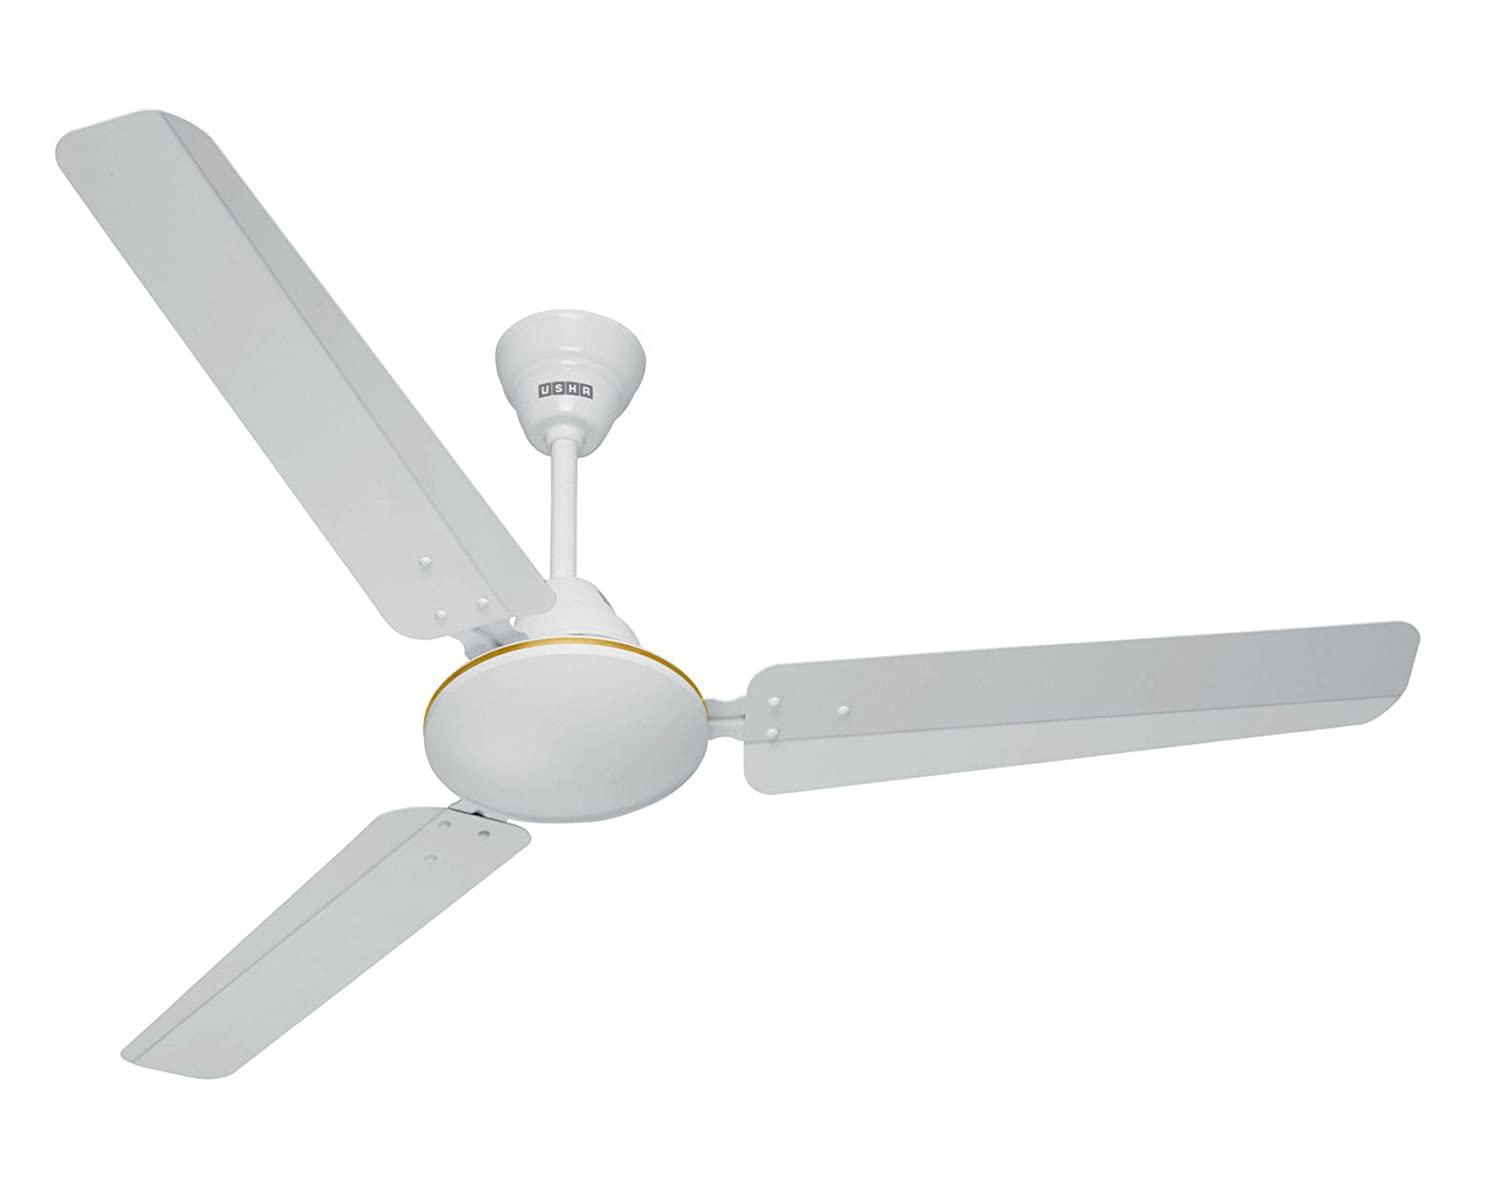 Buy usha technix 1200mm 5 star ceiling fan without regulator new buy usha technix 1200mm 5 star ceiling fan without regulator new white online at low prices in india amazon mozeypictures Gallery